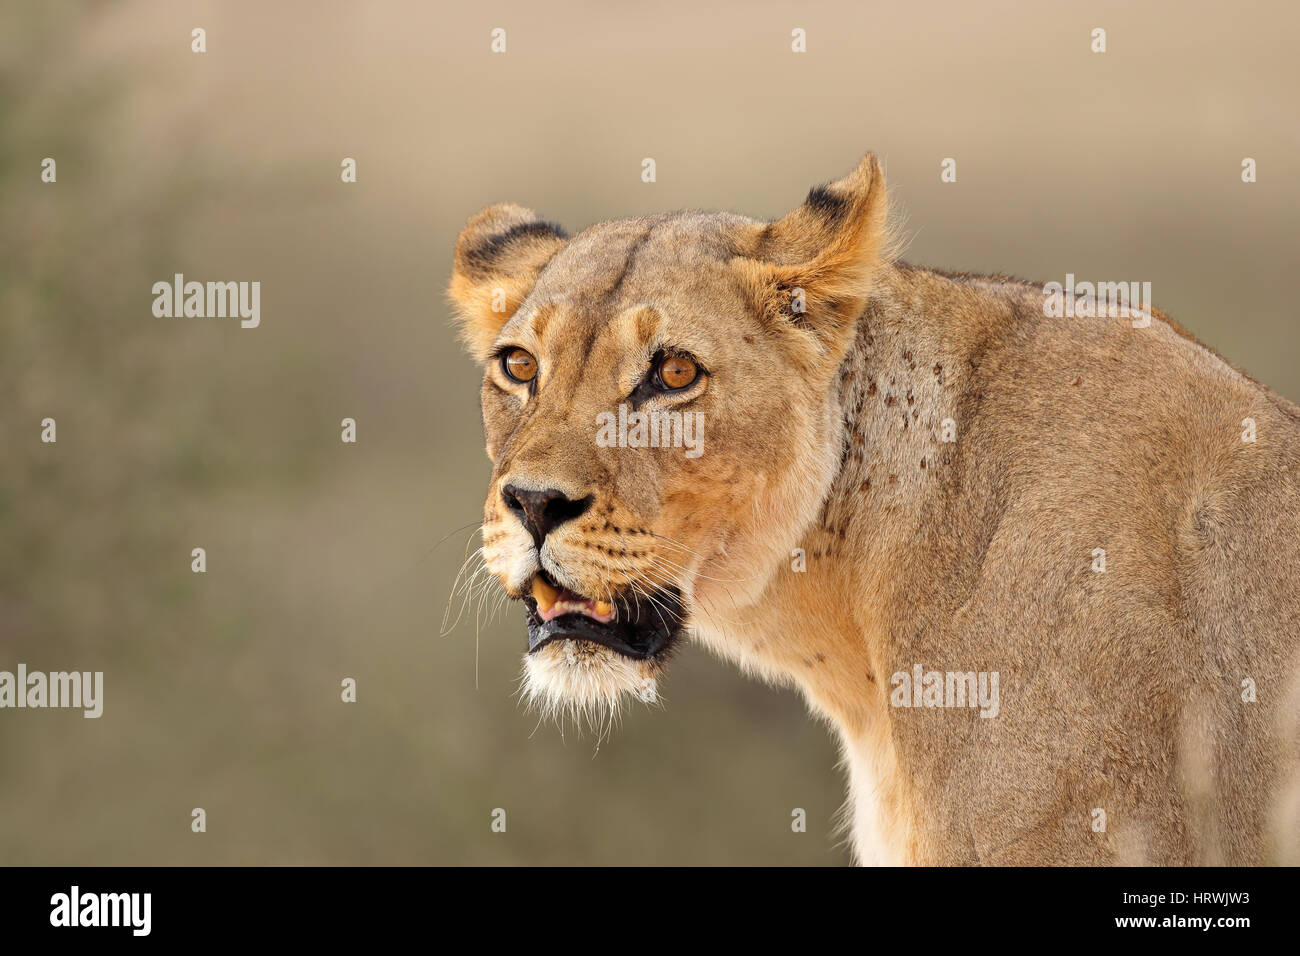 Portrait of an African lioness (Panthera leo), Kalahari desert, South Africa Stock Photo